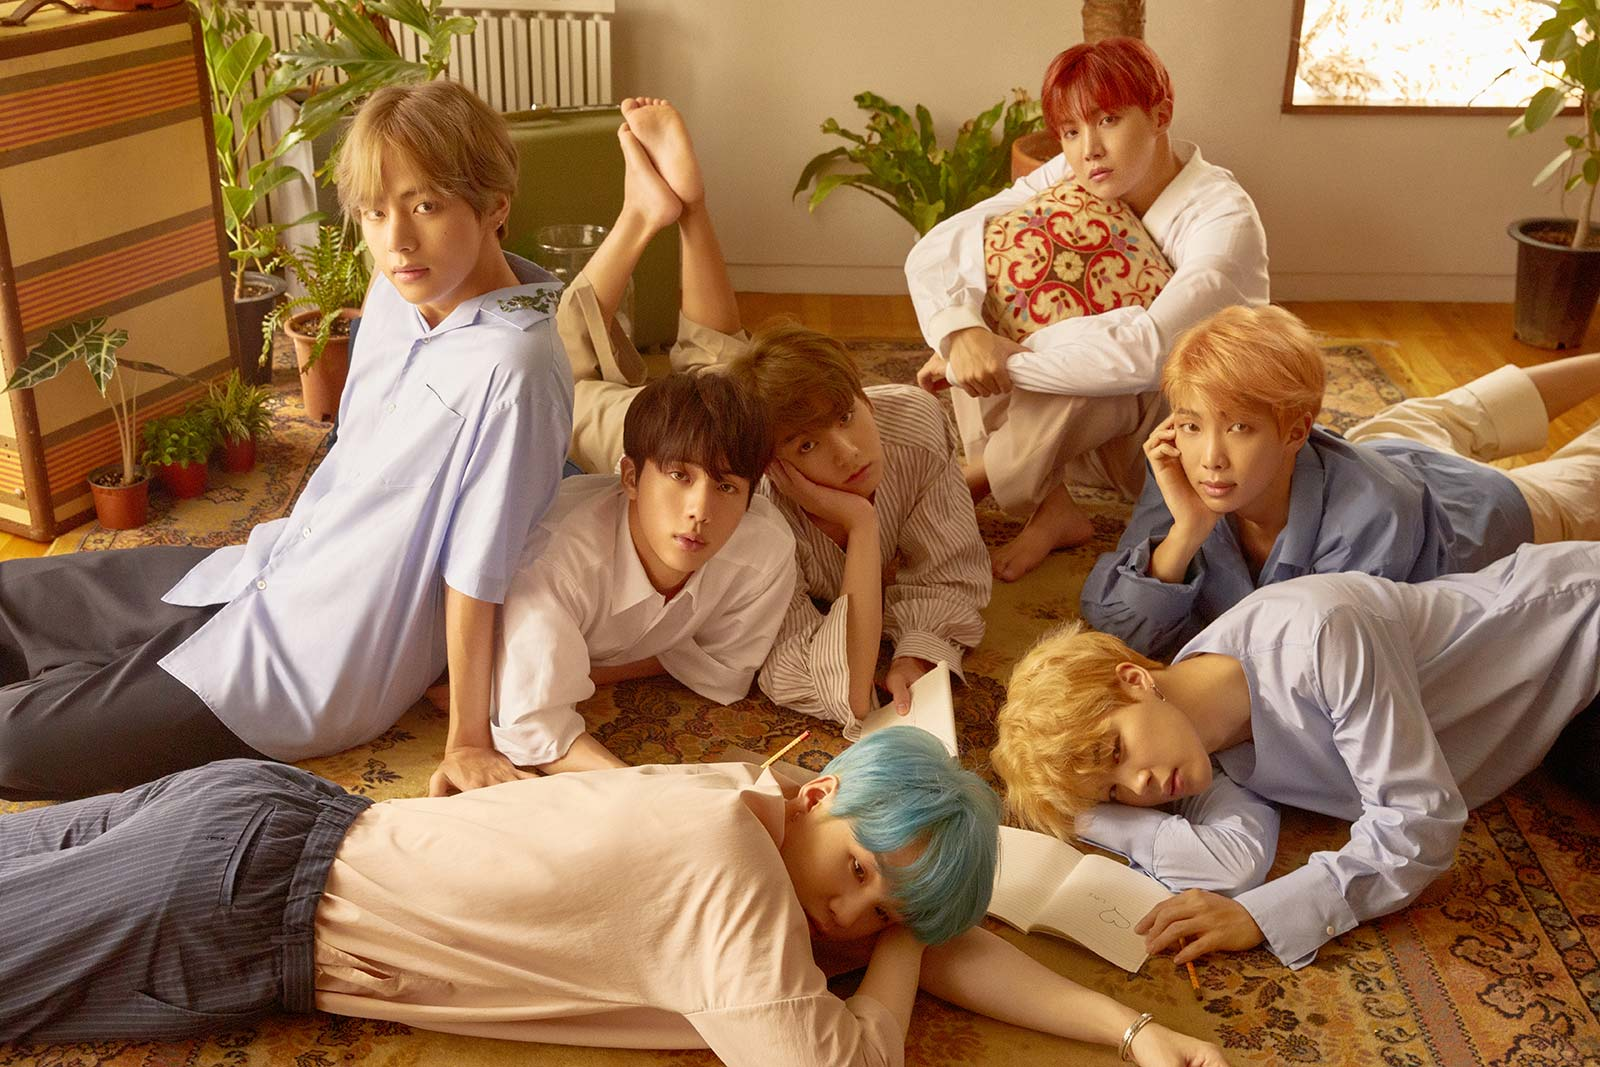 Bangtan Boys Aiming for Billboard Hot 100 with New Album